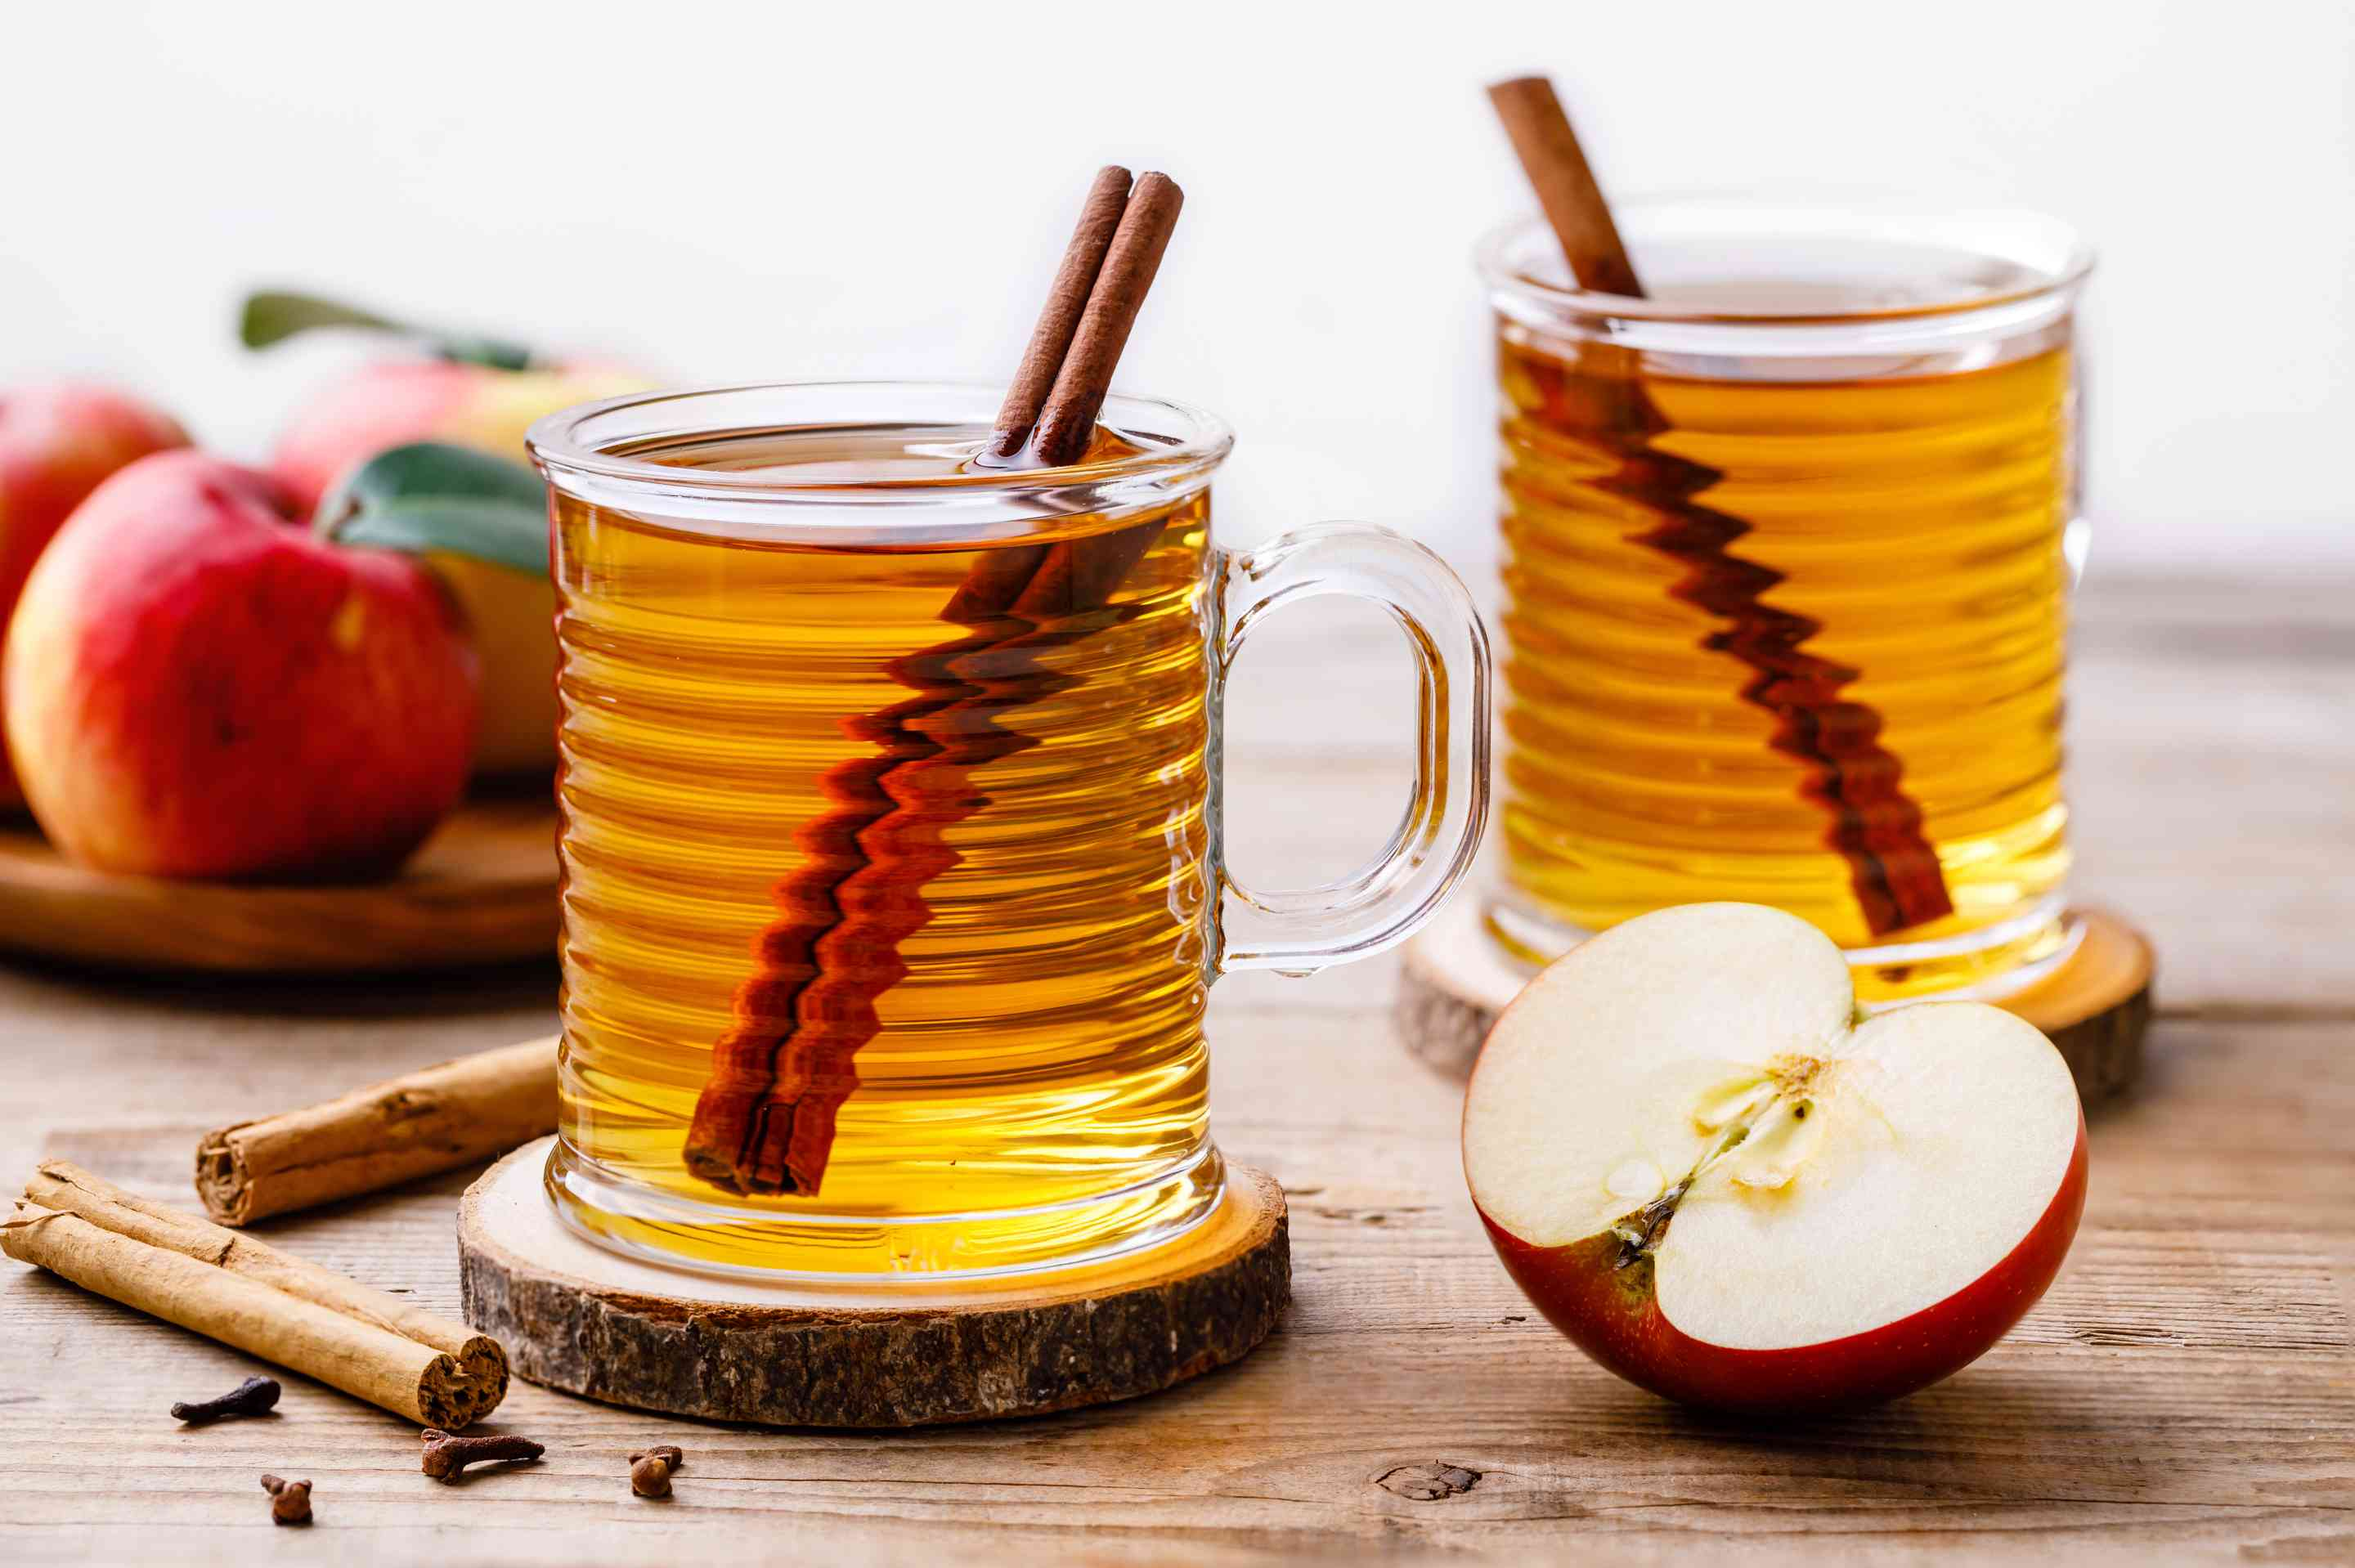 Simple hot spiced cider